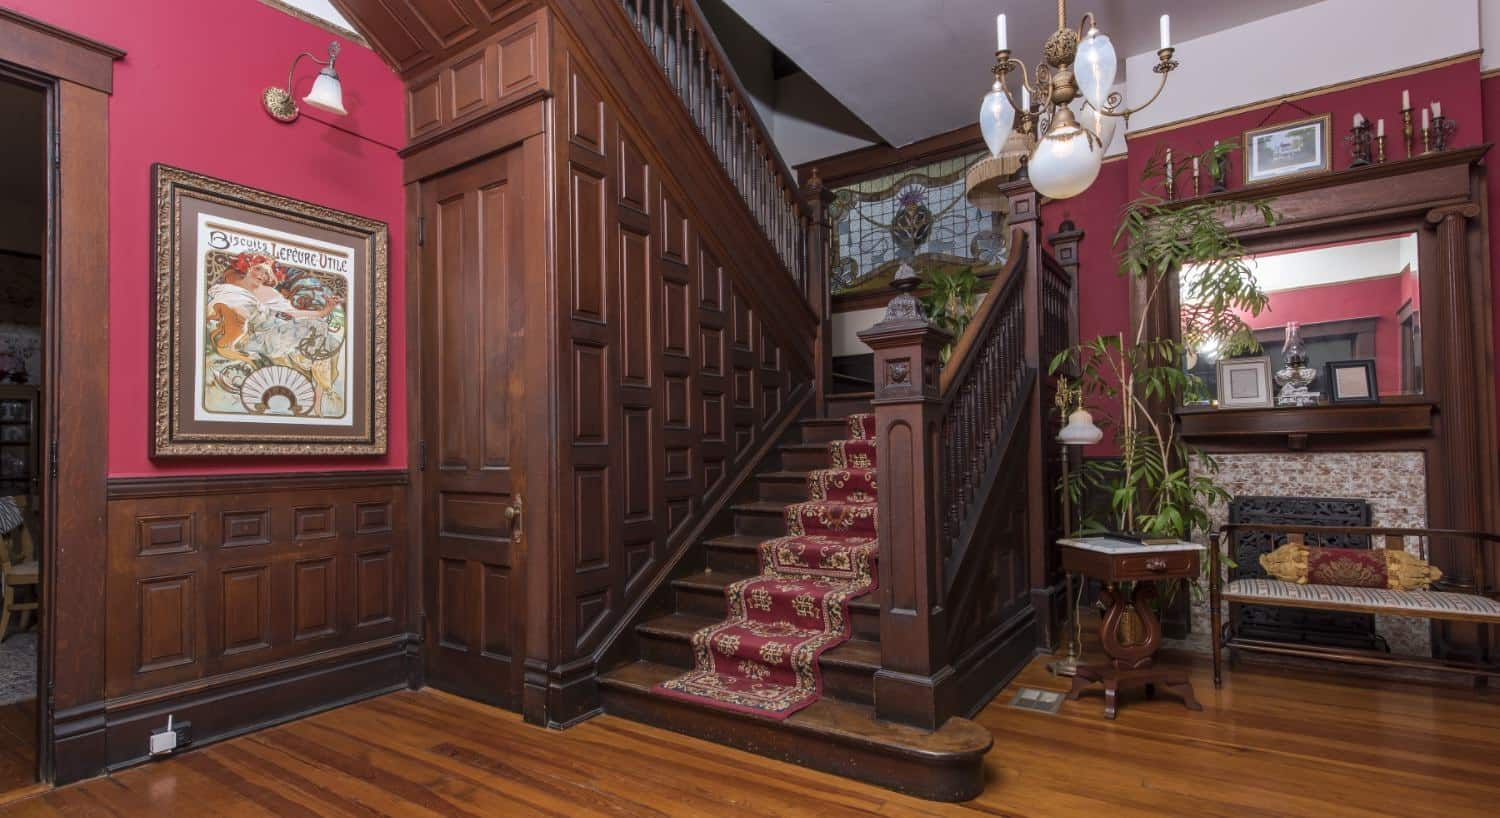 Large staircase with dark brown ornate wood railing and paneling with floral burgundy stair runner